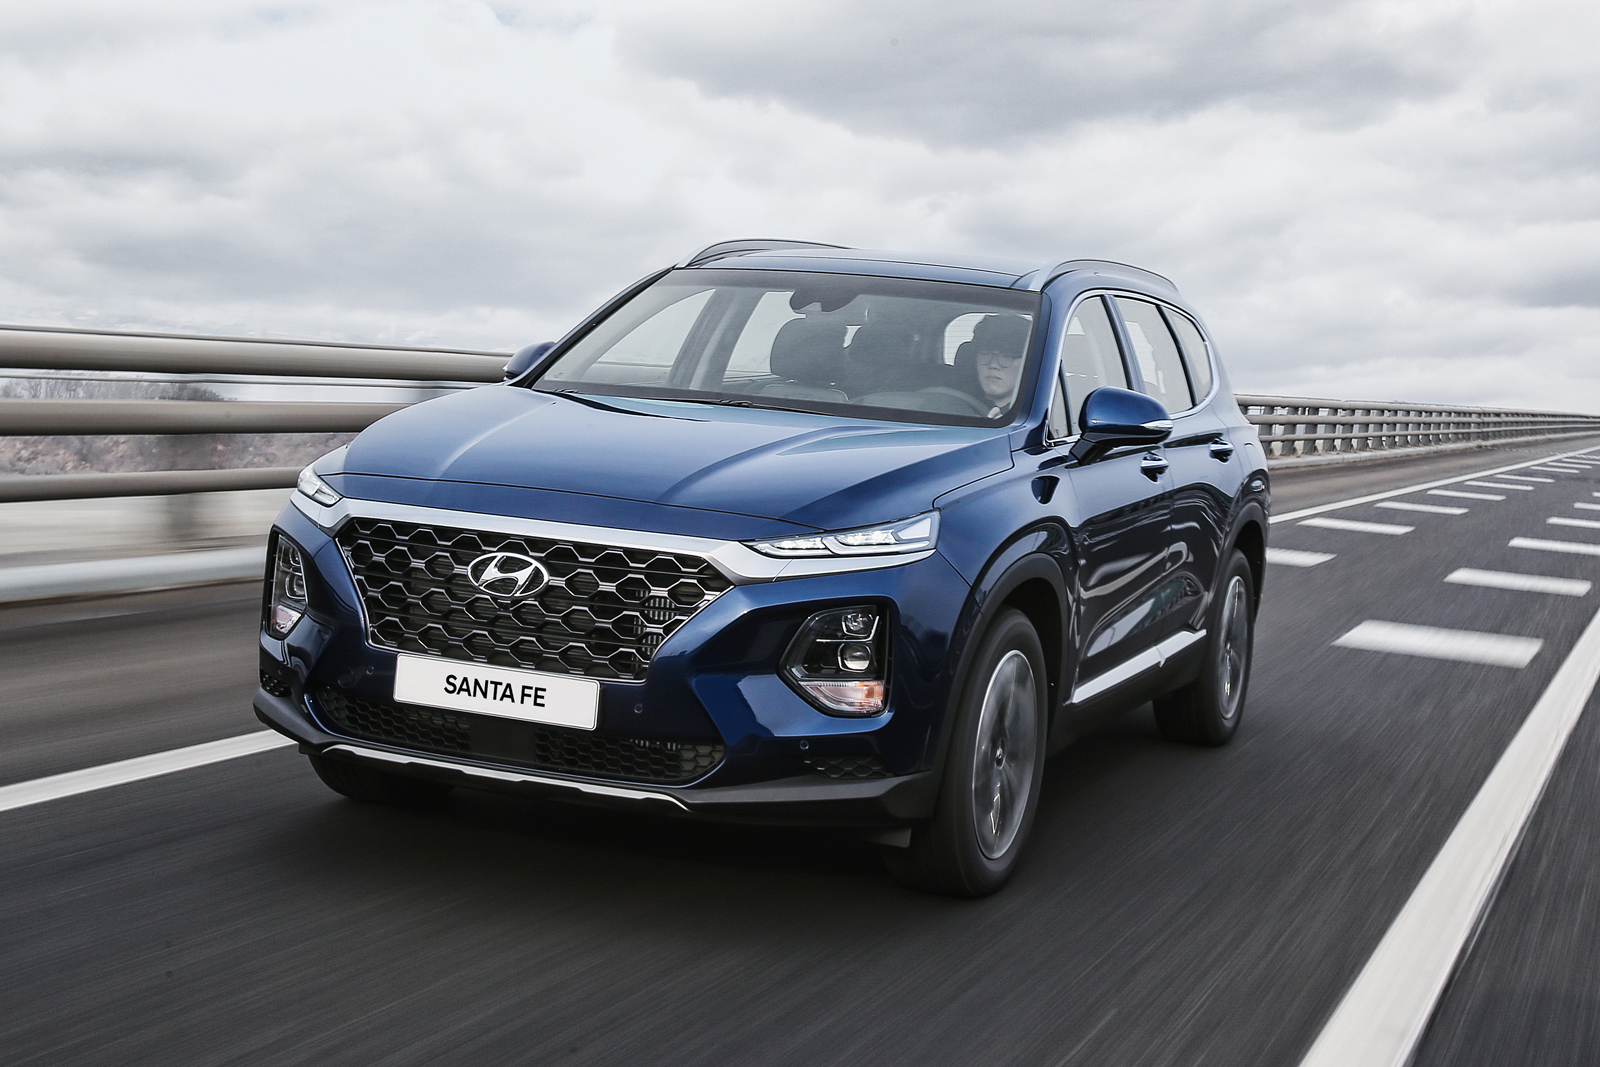 2019 Hyundai Santa Fe Debuts Coming To Dealerships This